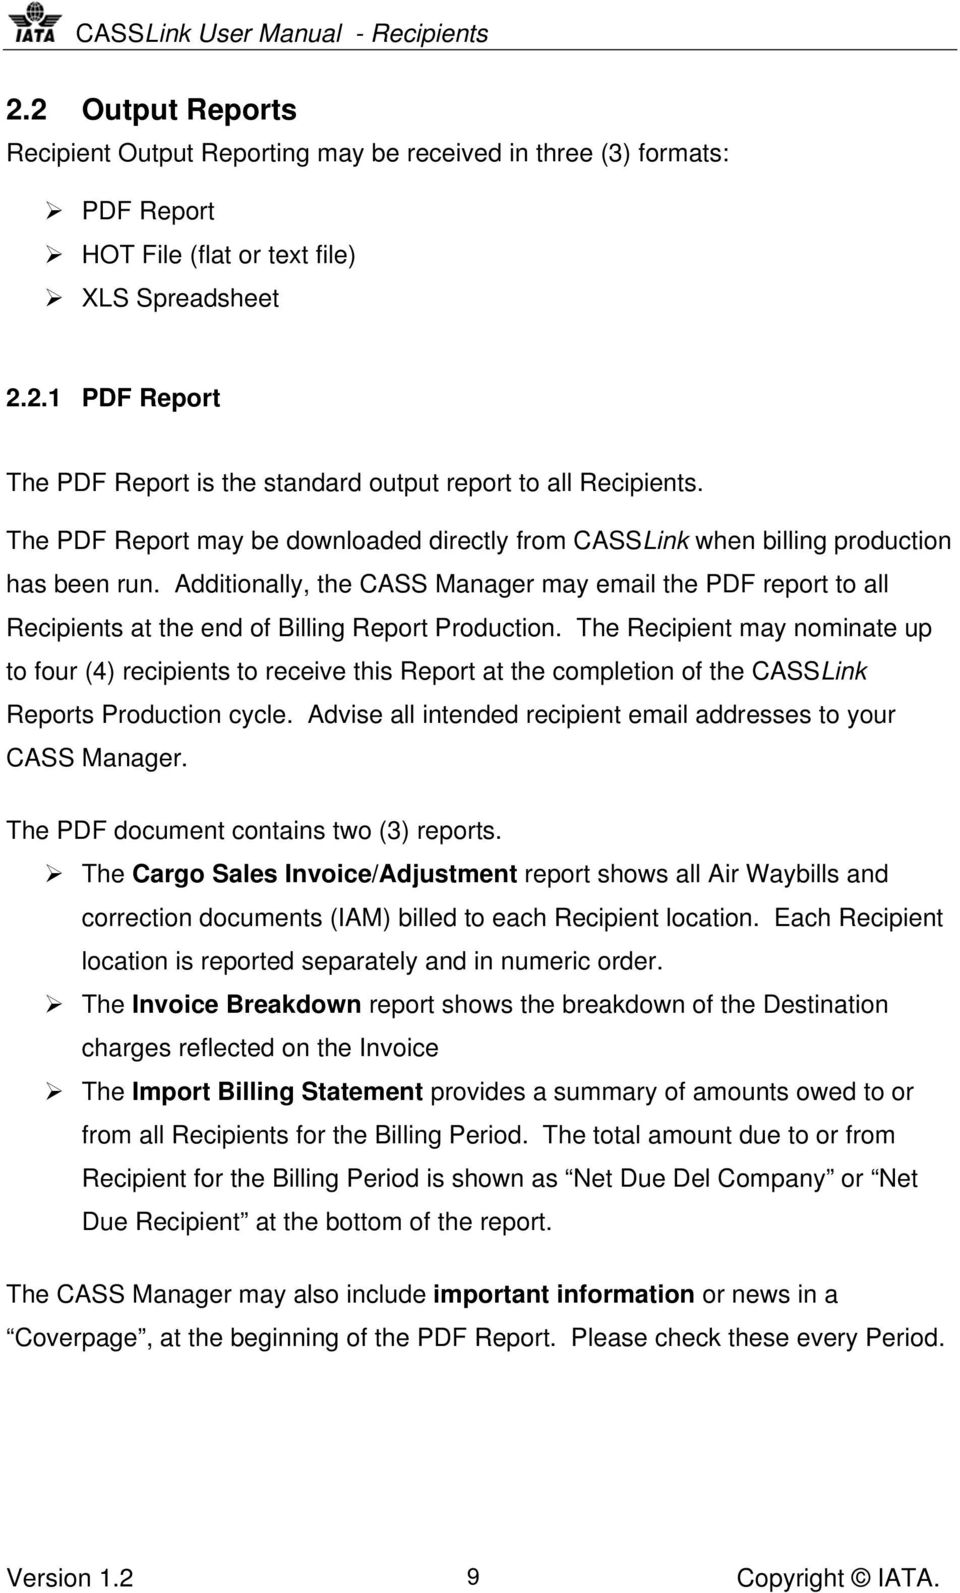 Additionally, the CASS Manager may email the PDF report to all Recipients at the end of Billing Report Production.